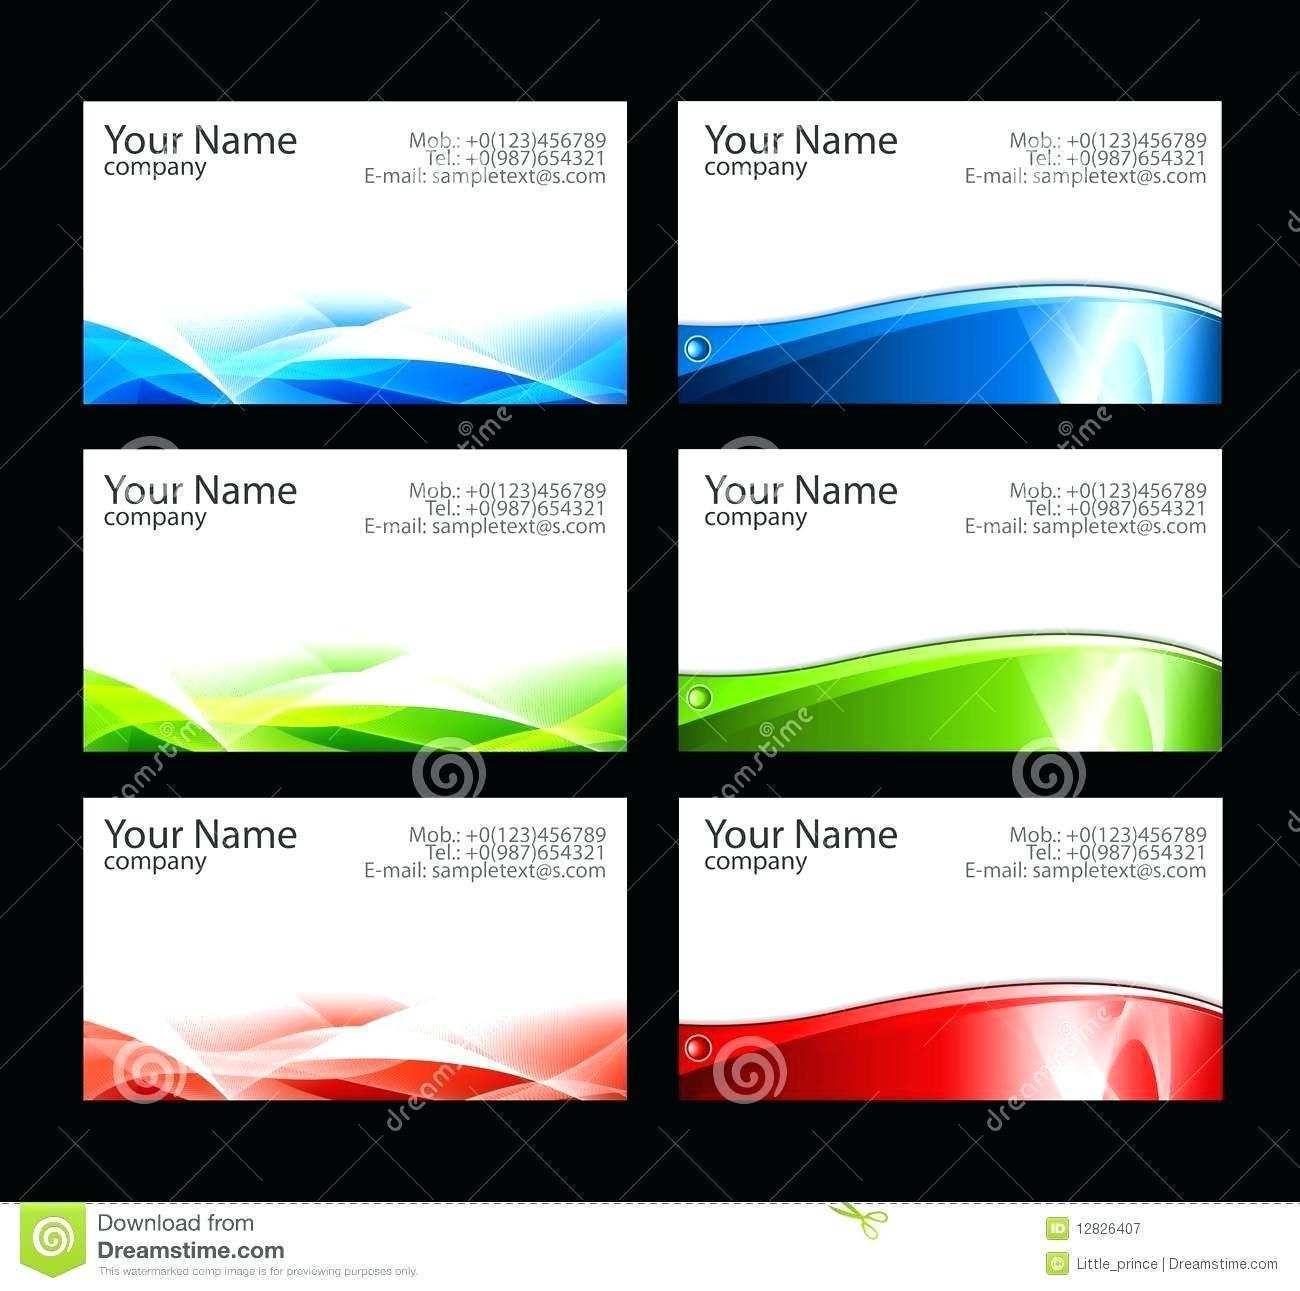 21 Printable Download Free Blank Business Card Template Microsoft For Plain Business Card Template Microsoft Word